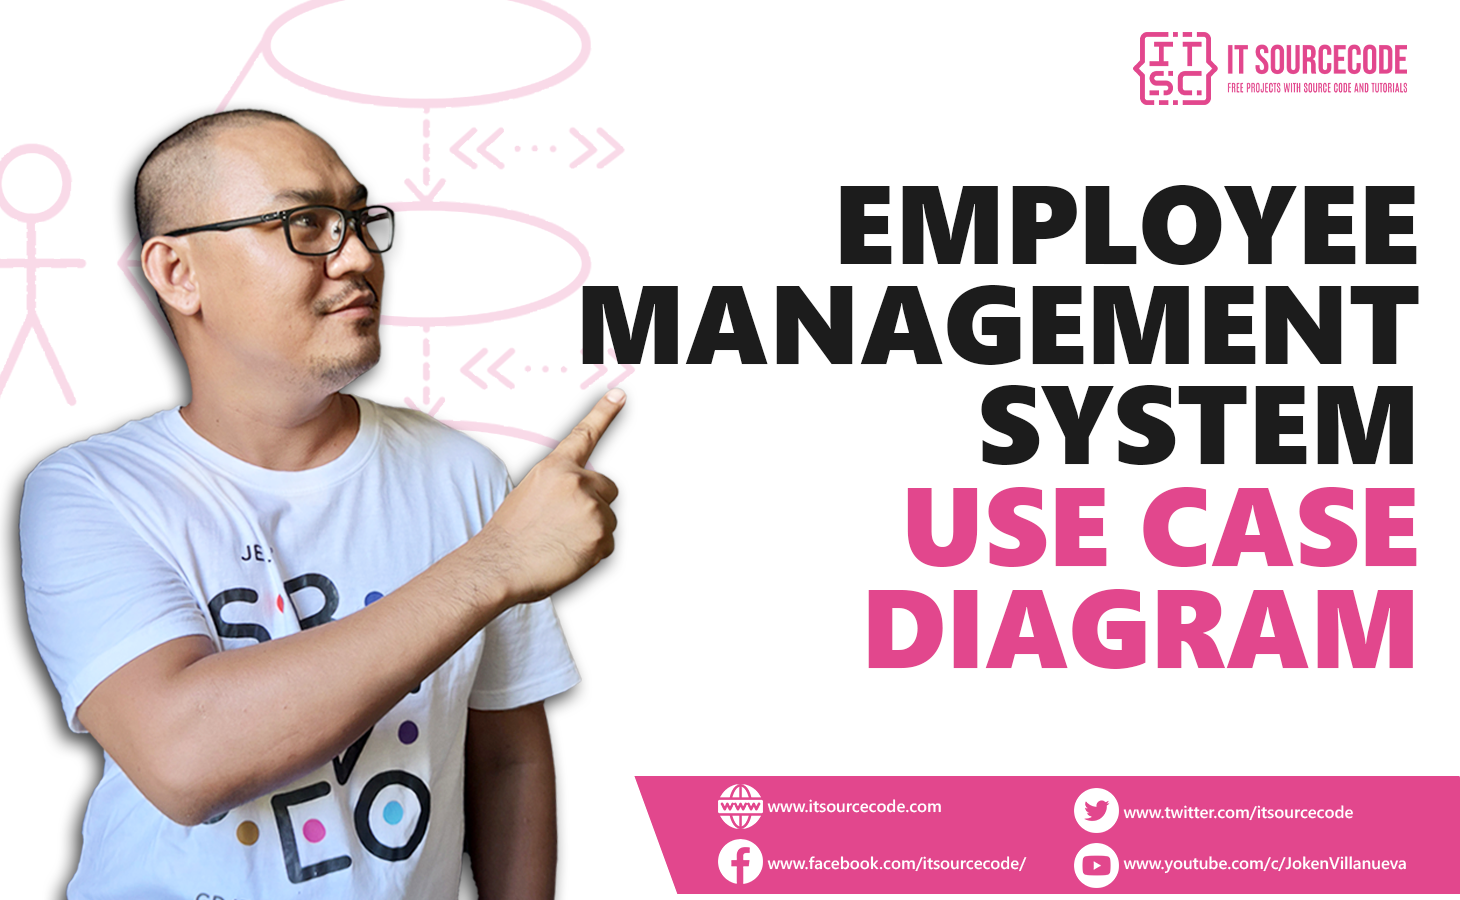 Use Case diagram for Employee Management System